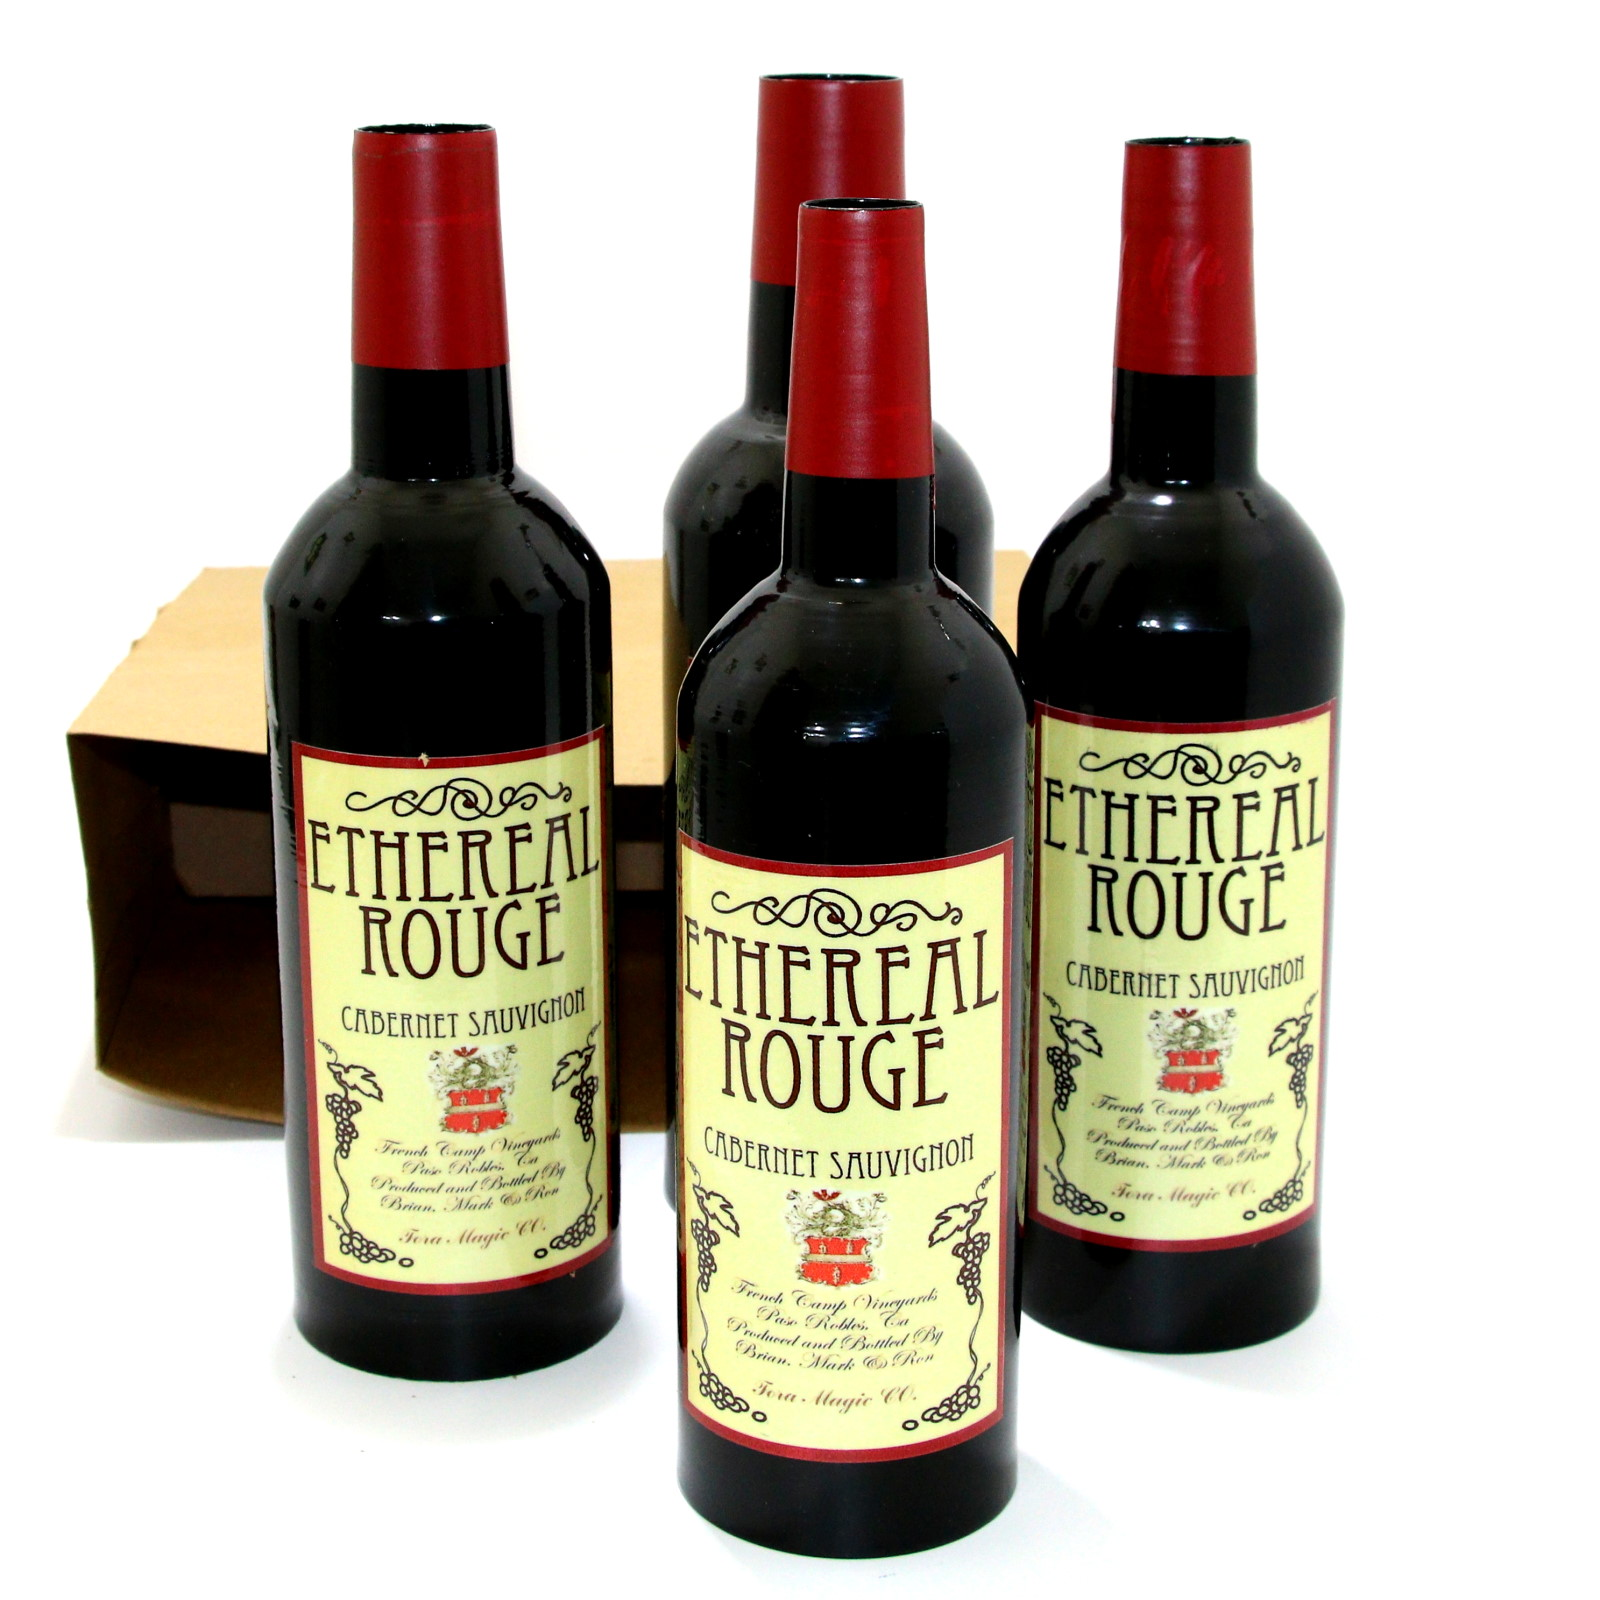 Appearing Wine Bottles from Paper Bag by Tora Magic Company